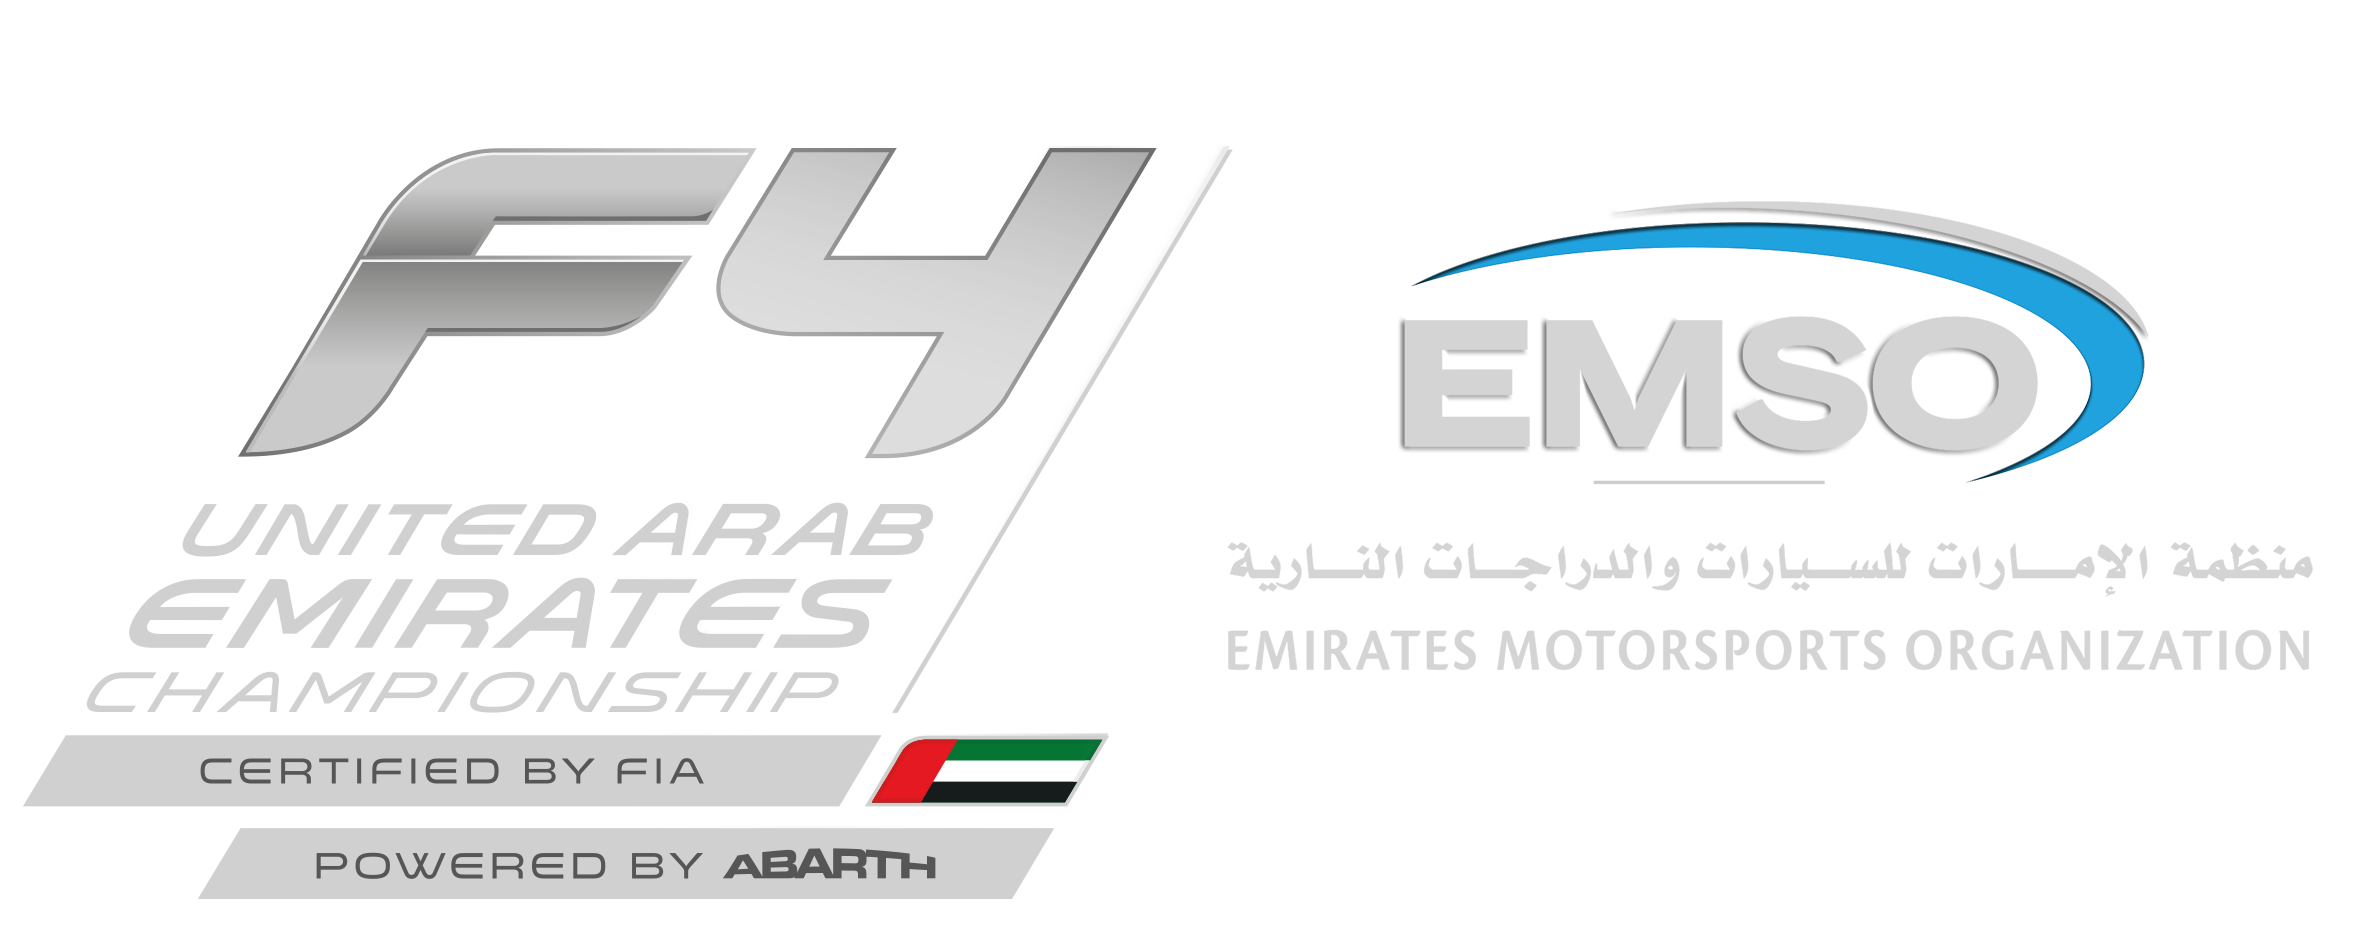 F4UAE Mockup 2019-2020_Reversed Homepage.png